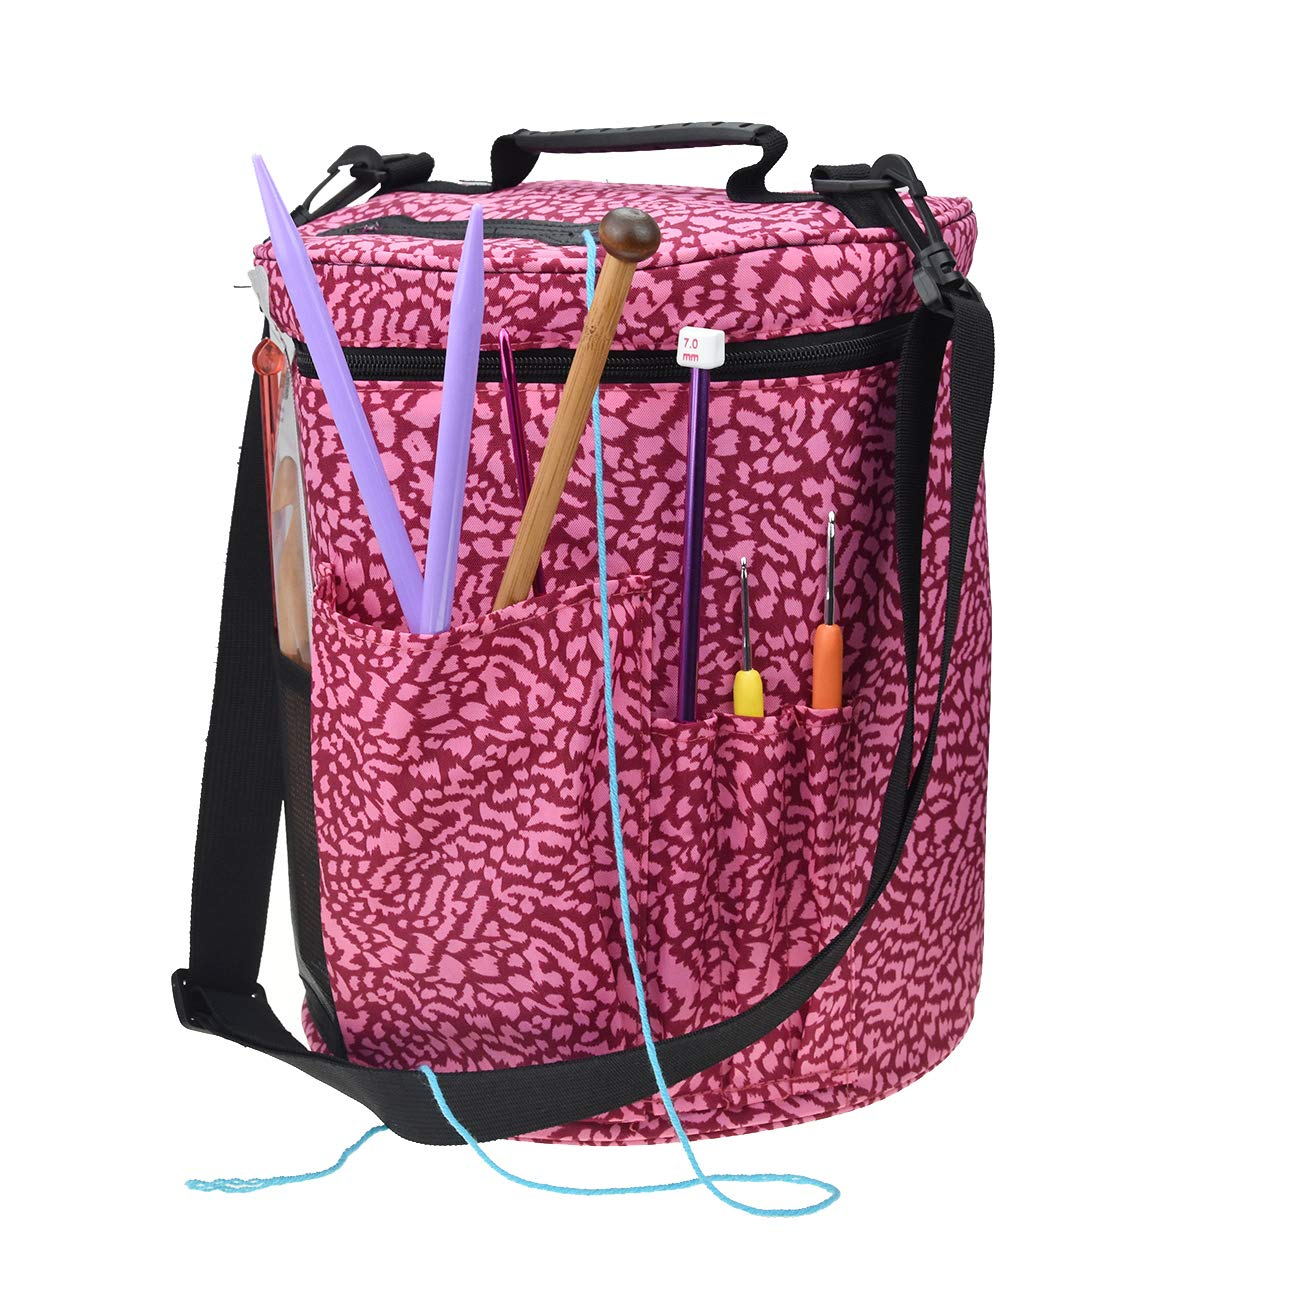 Large Capacity/Portable/Lightweight Yarn Storage Knitting Tote Organizer Bag with Shoulder Strap Handles Looen Yarn Containers W/Pockets for Crochet Hooks & Knitting Needles (Leopard, 12.7X10.8